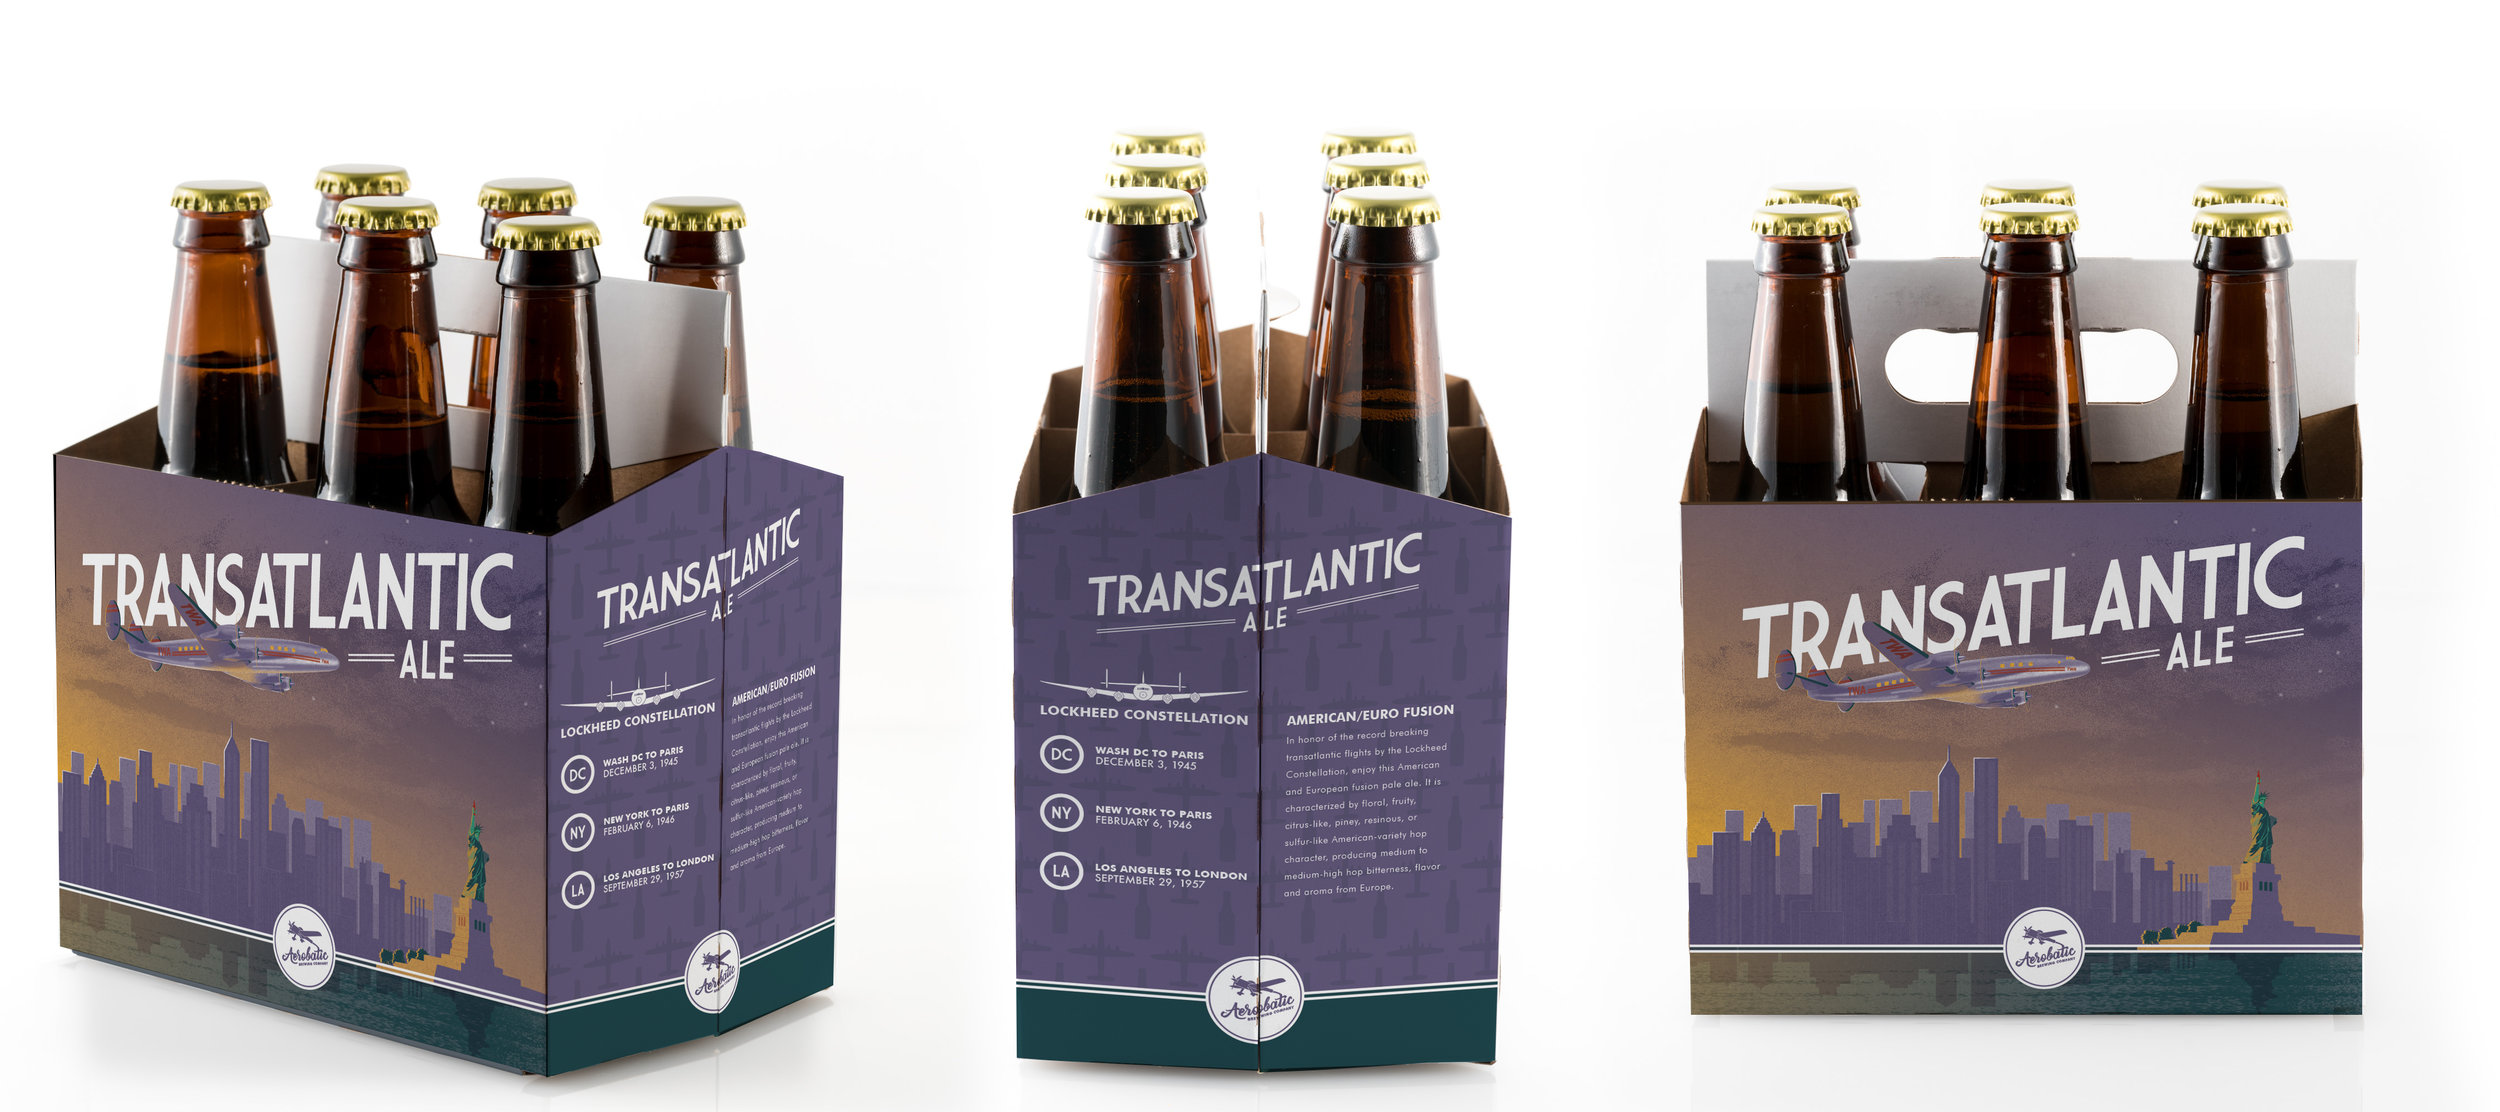 transatlantic-ale-aerobatic-brewing-kyle-dolan-design-illustration-6pack-1.jpg